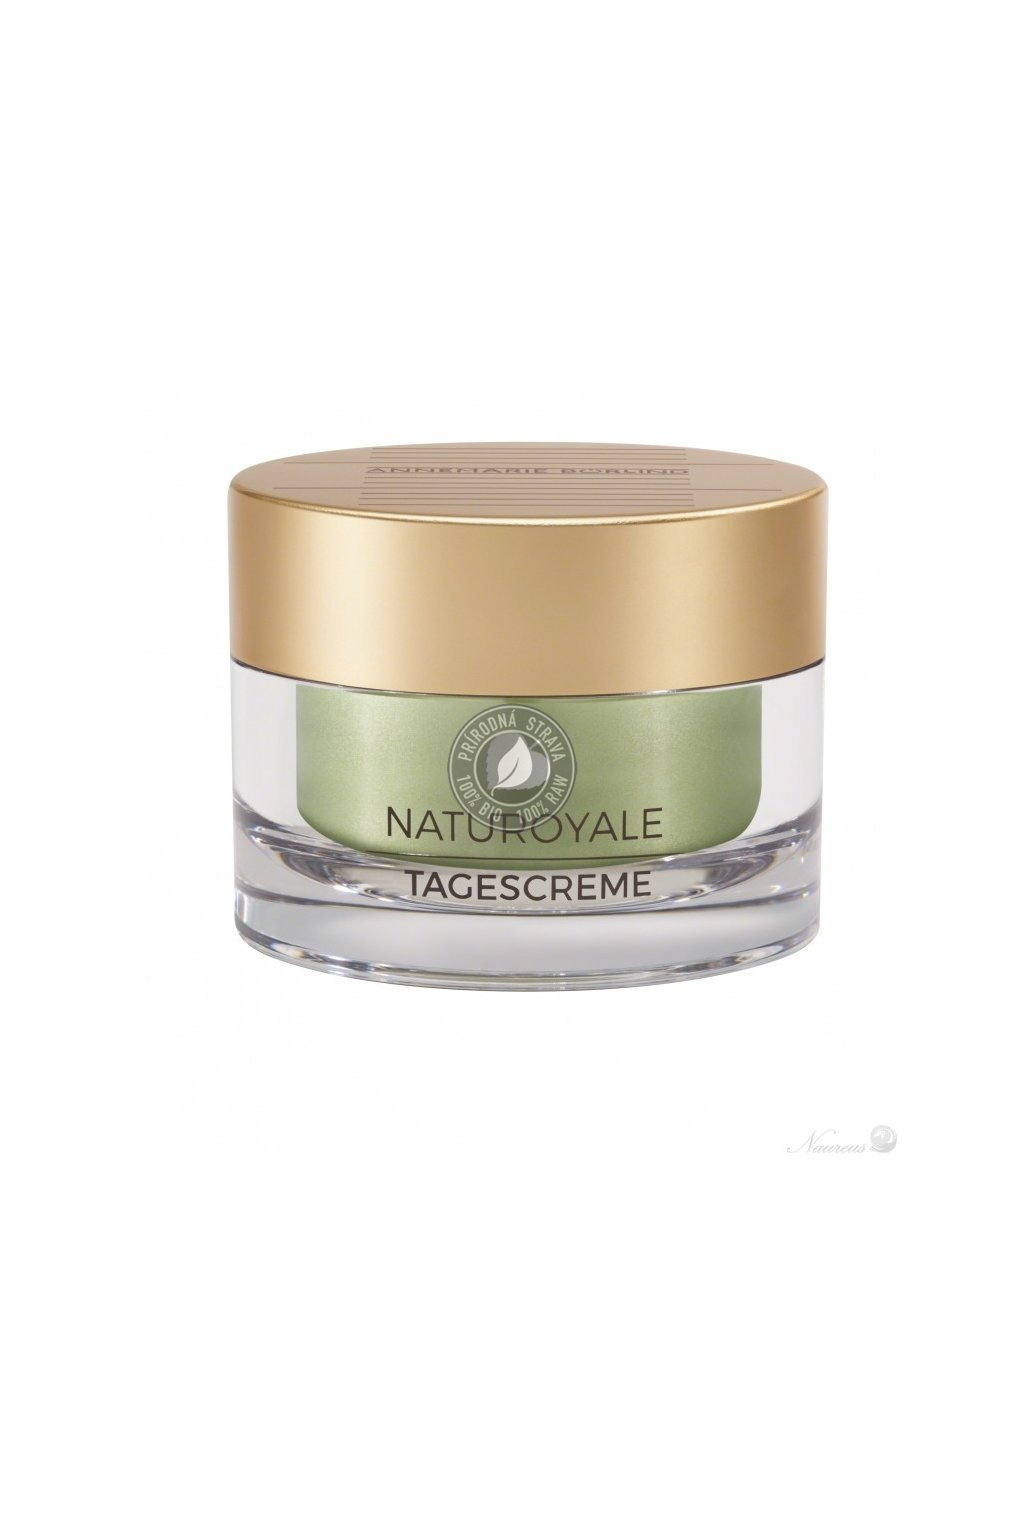 ANNEMARIE BÖRLIND NATUROYALE Day Cream Pressformat 3848 770x770